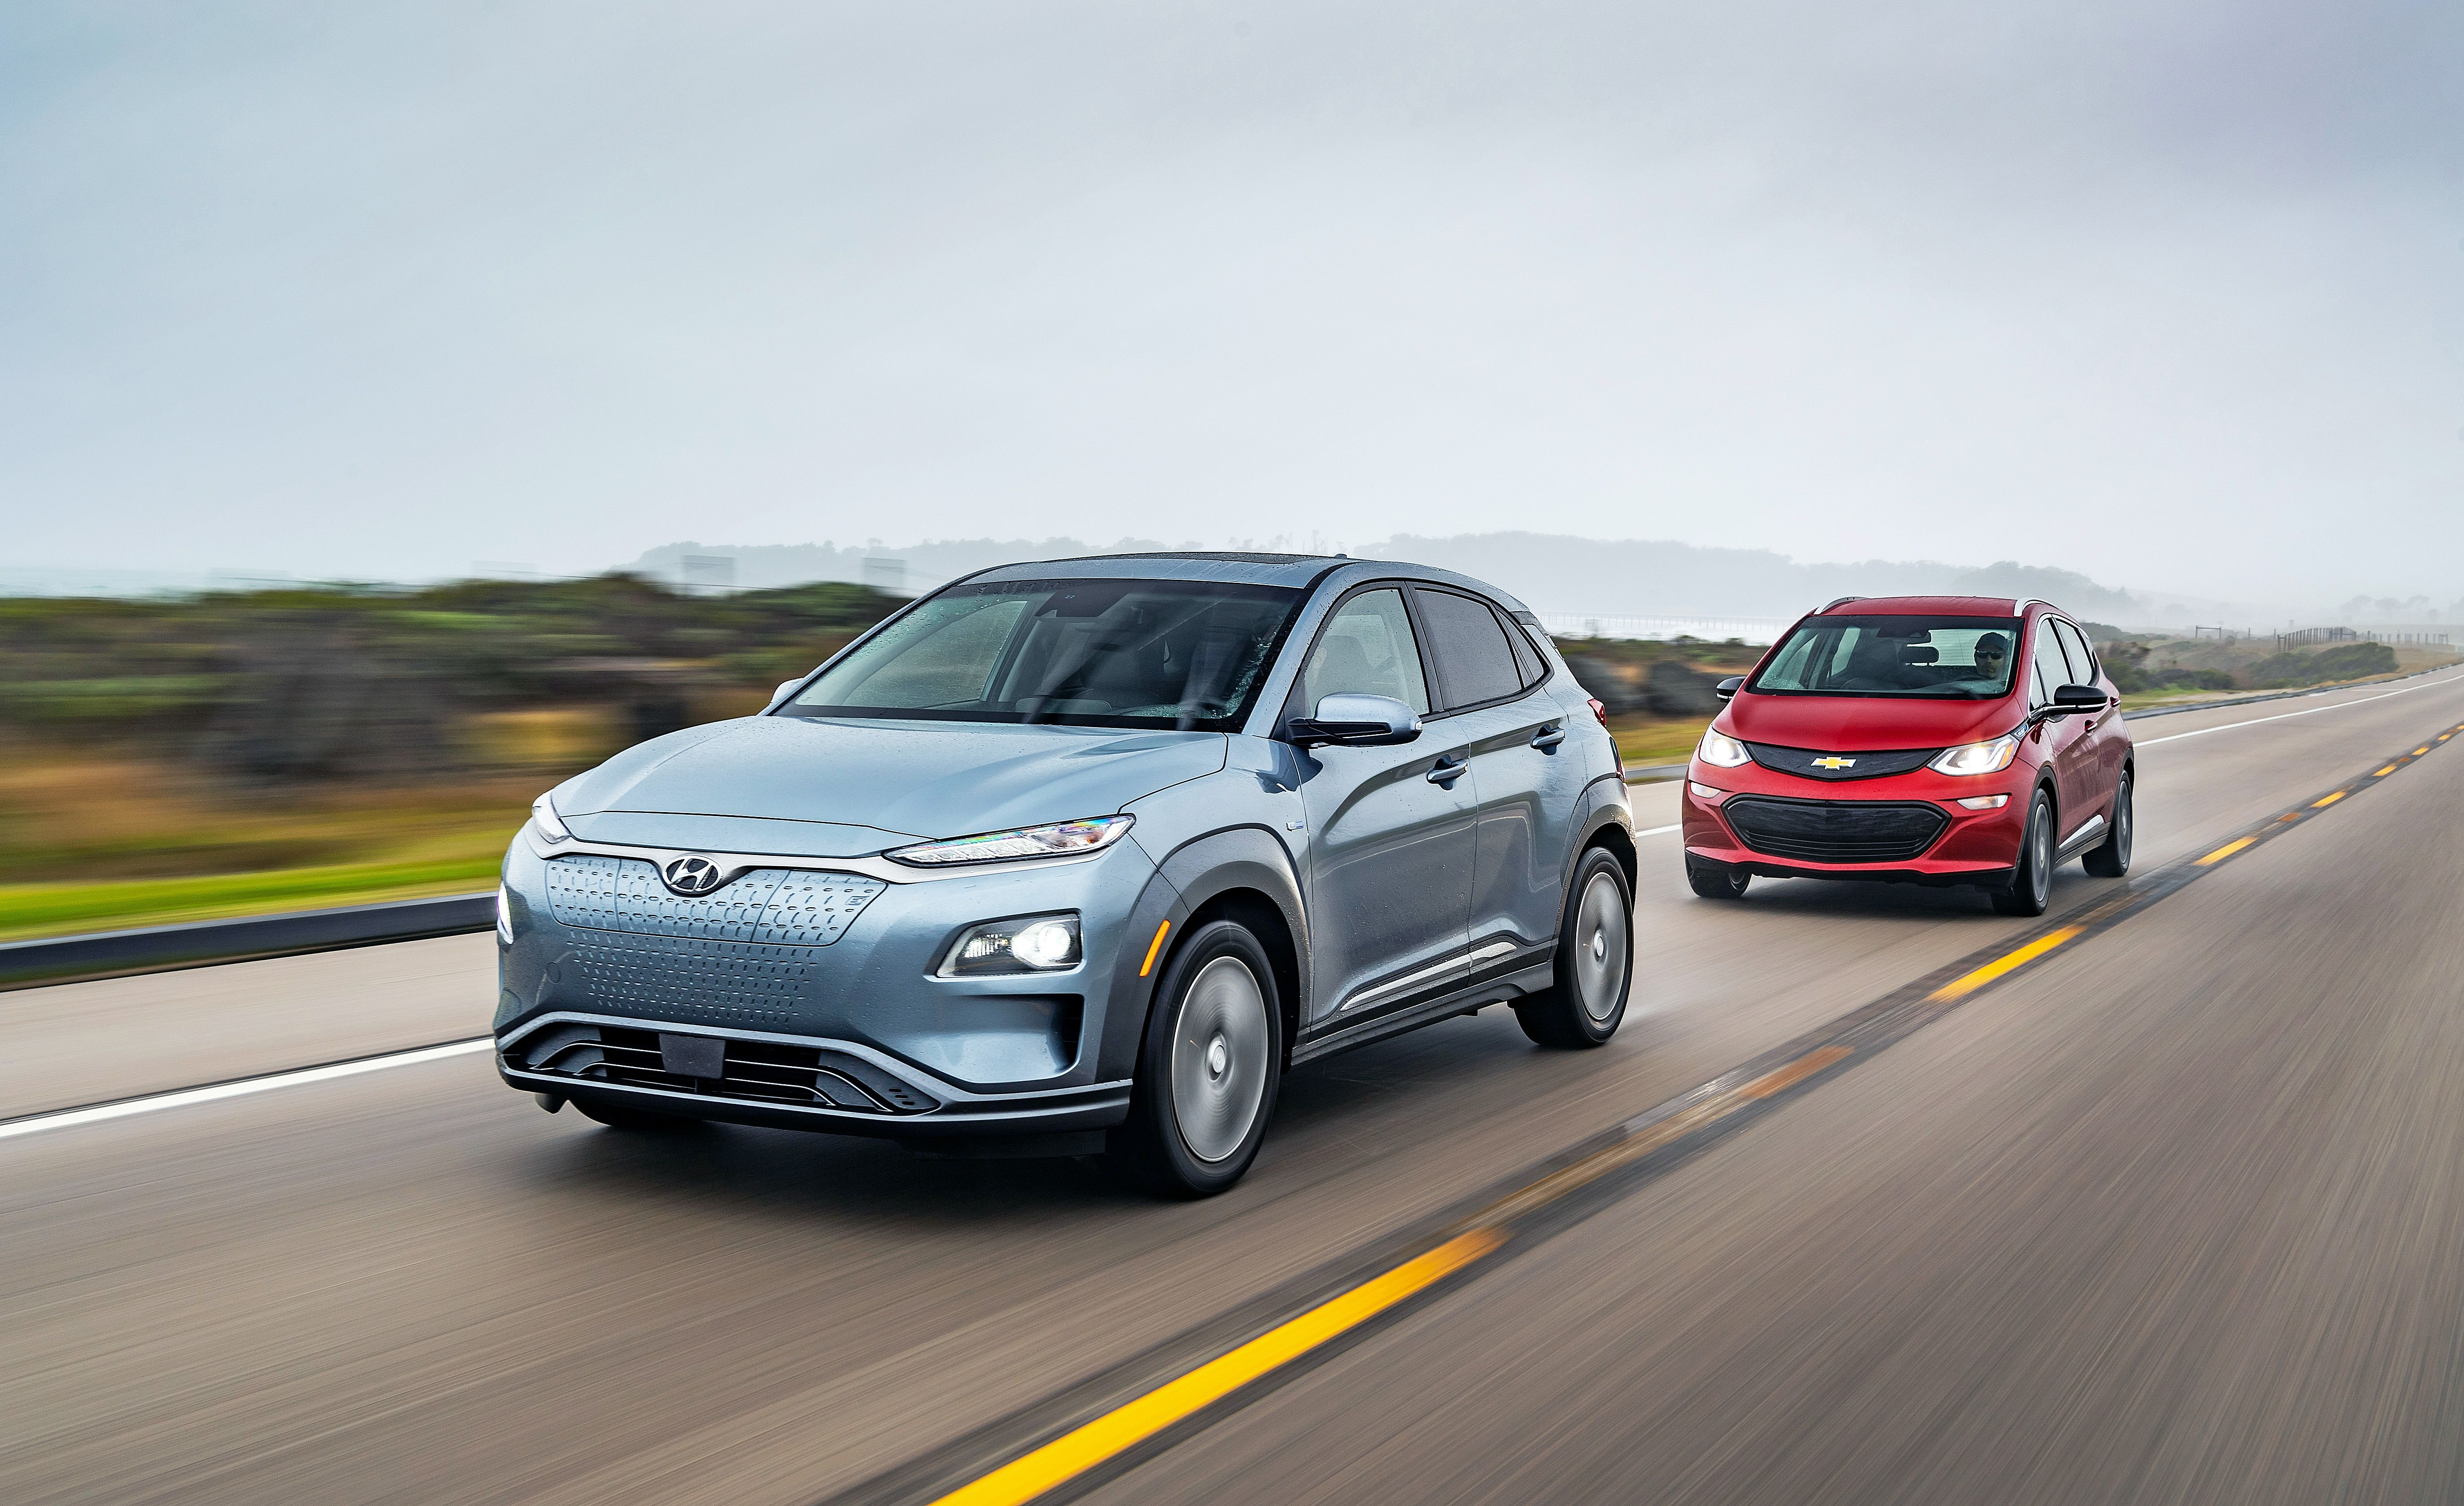 2019 chevrolet bolt and 2019 hyundai kona electric comparison 101 1550687261